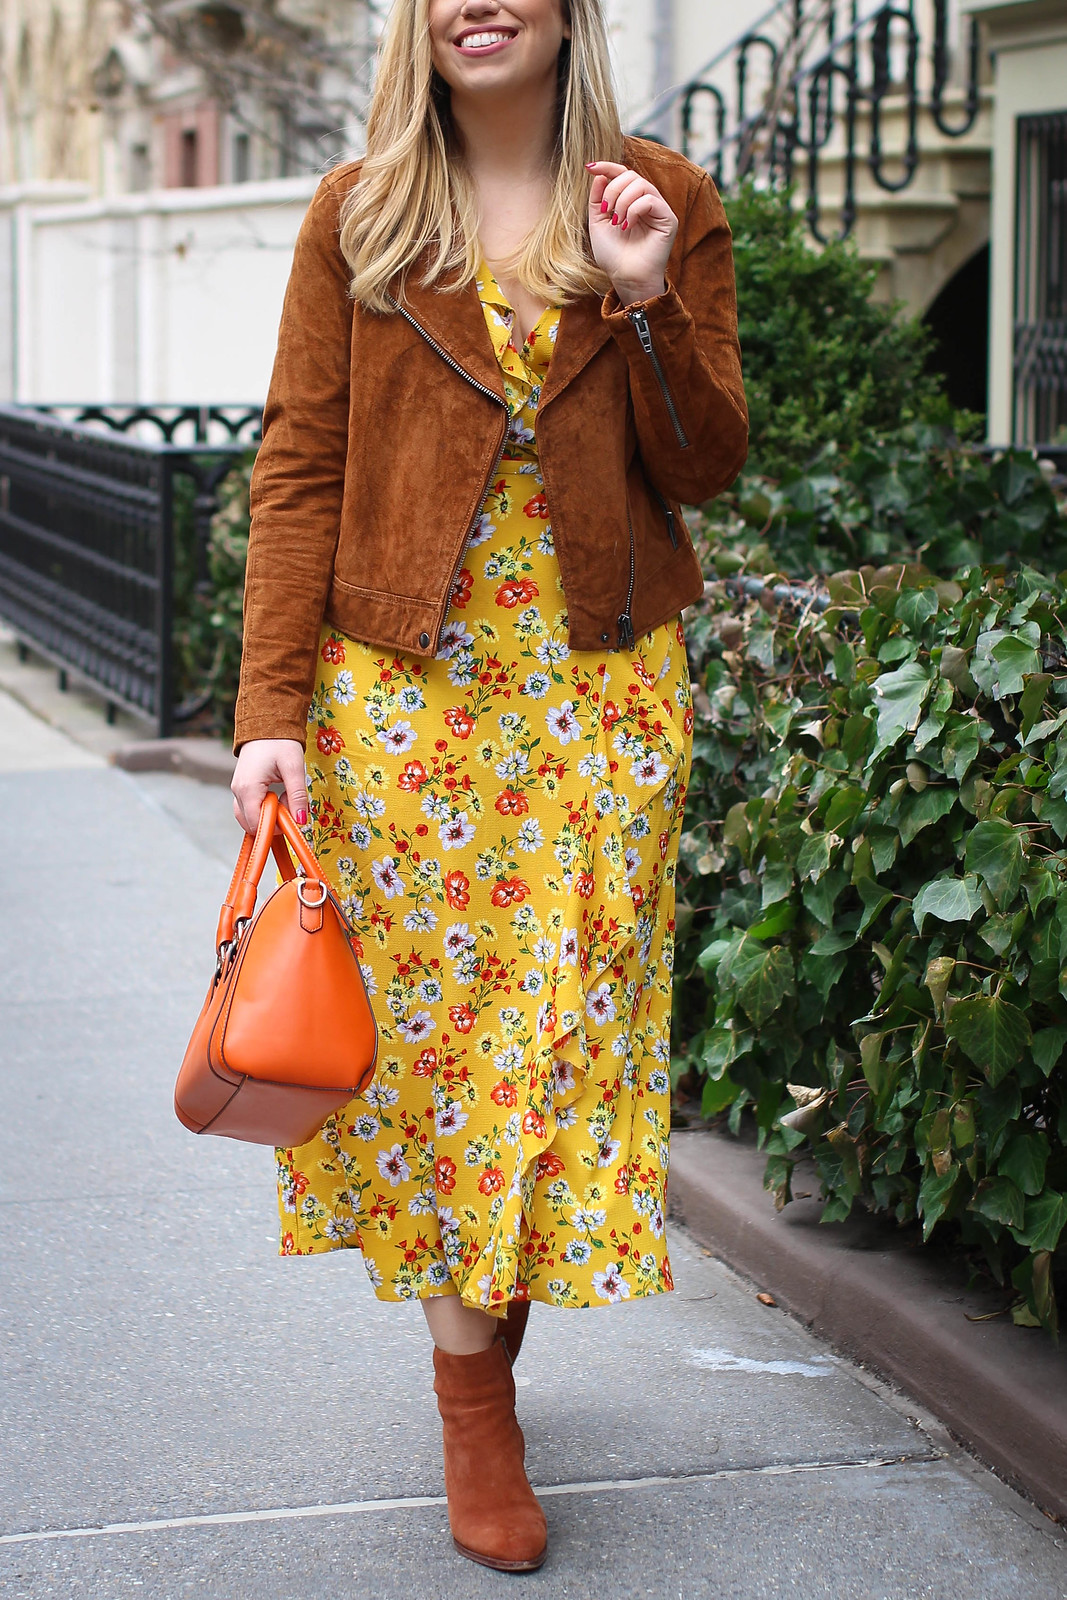 Blank NYC Brown Suede Jacket Yellow Floral Ruffle Wrap Dress Spring Outfit Ideas NYC